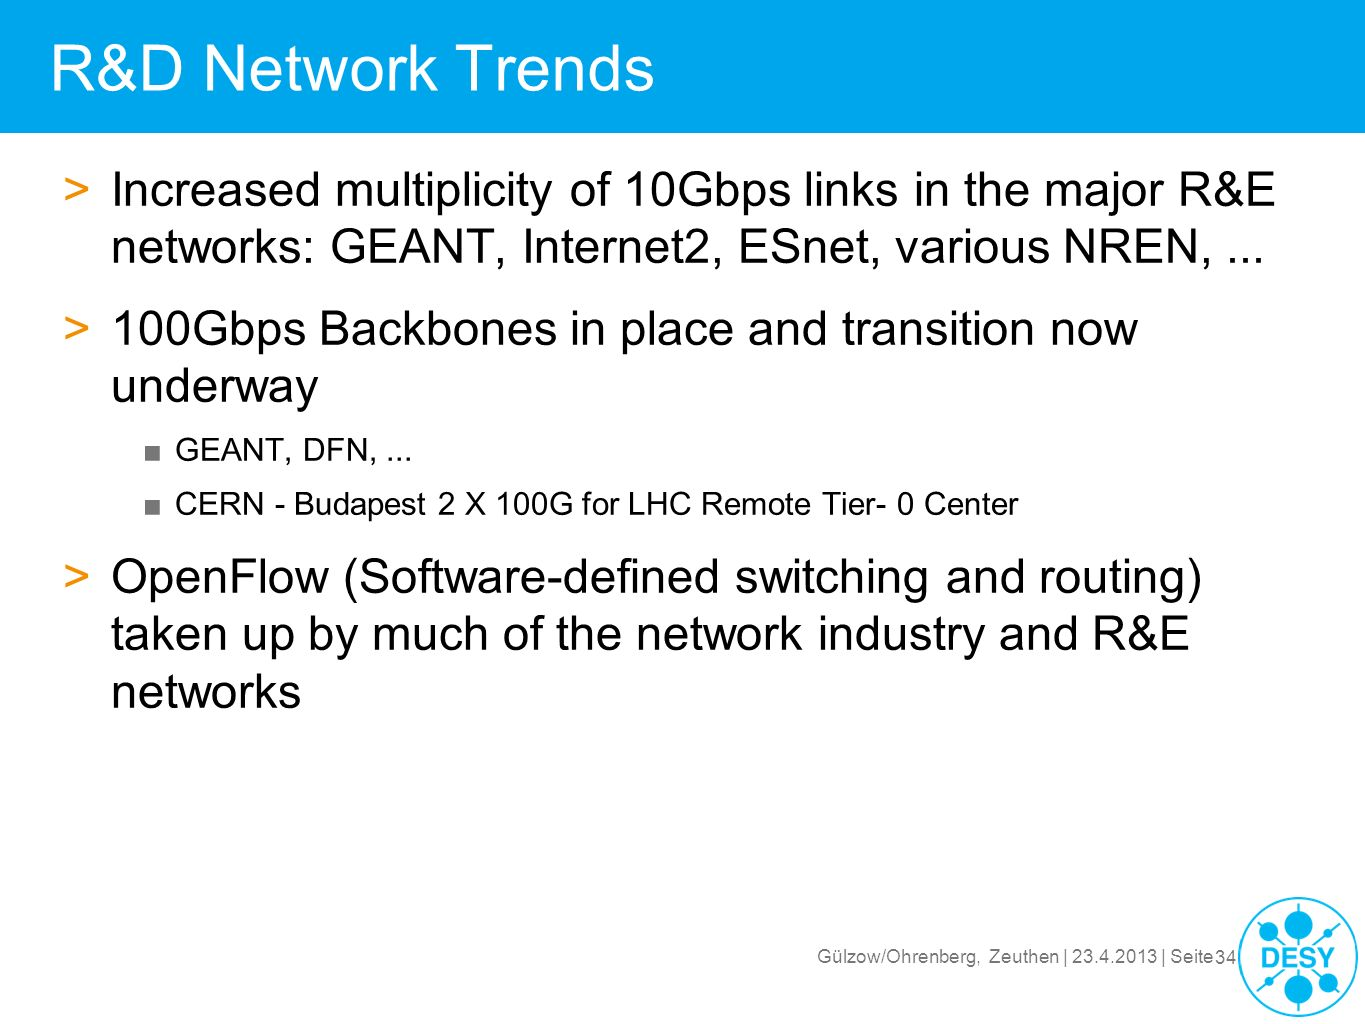 R&D Network Trends Increased multiplicity of 10Gbps links in the major R&E networks: GEANT, Internet2, ESnet, various NREN, ...